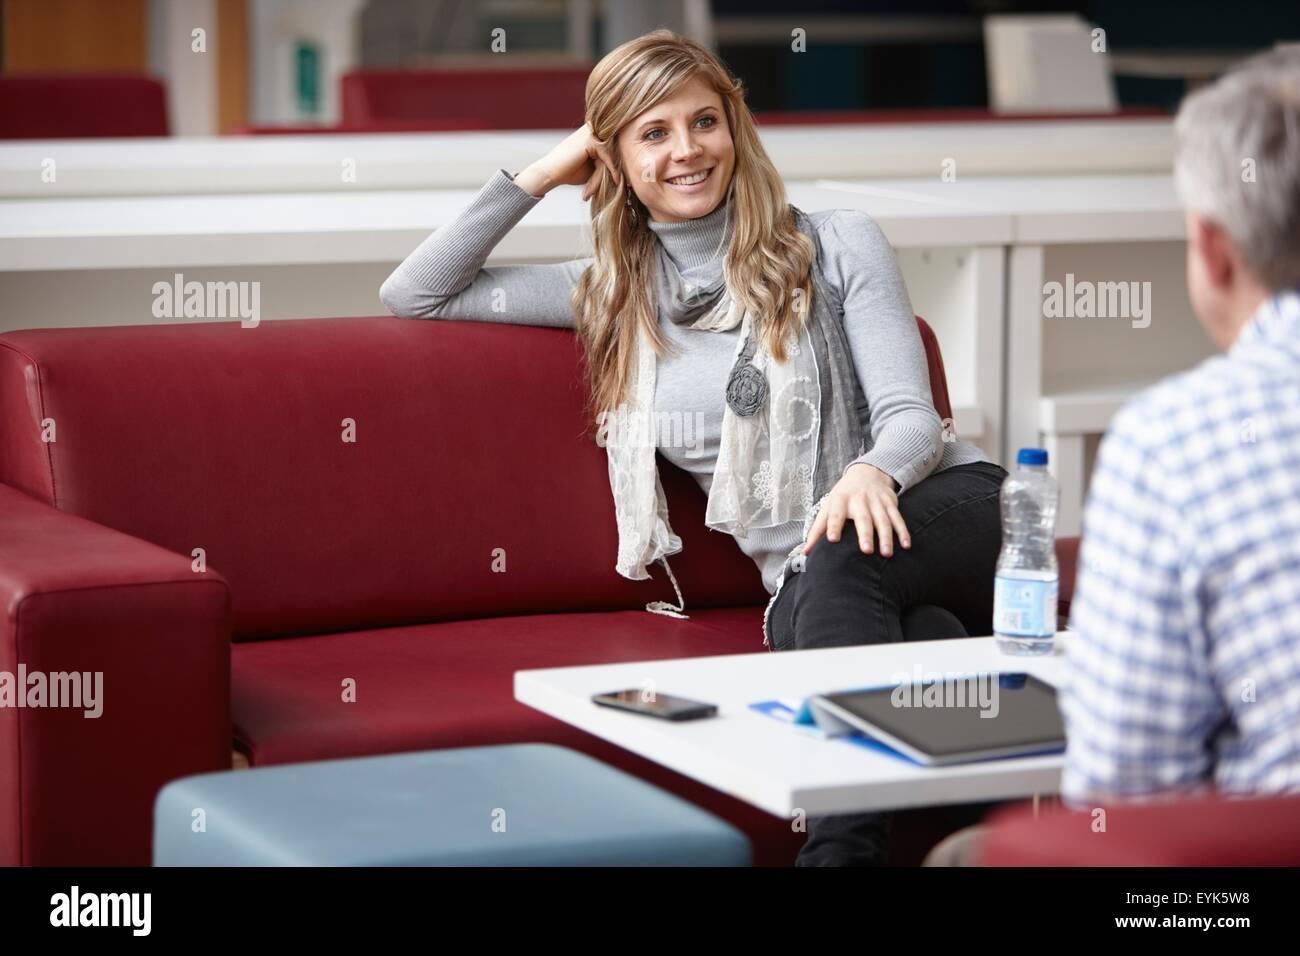 Businessman and woman meeting on office sofas - Stock Image